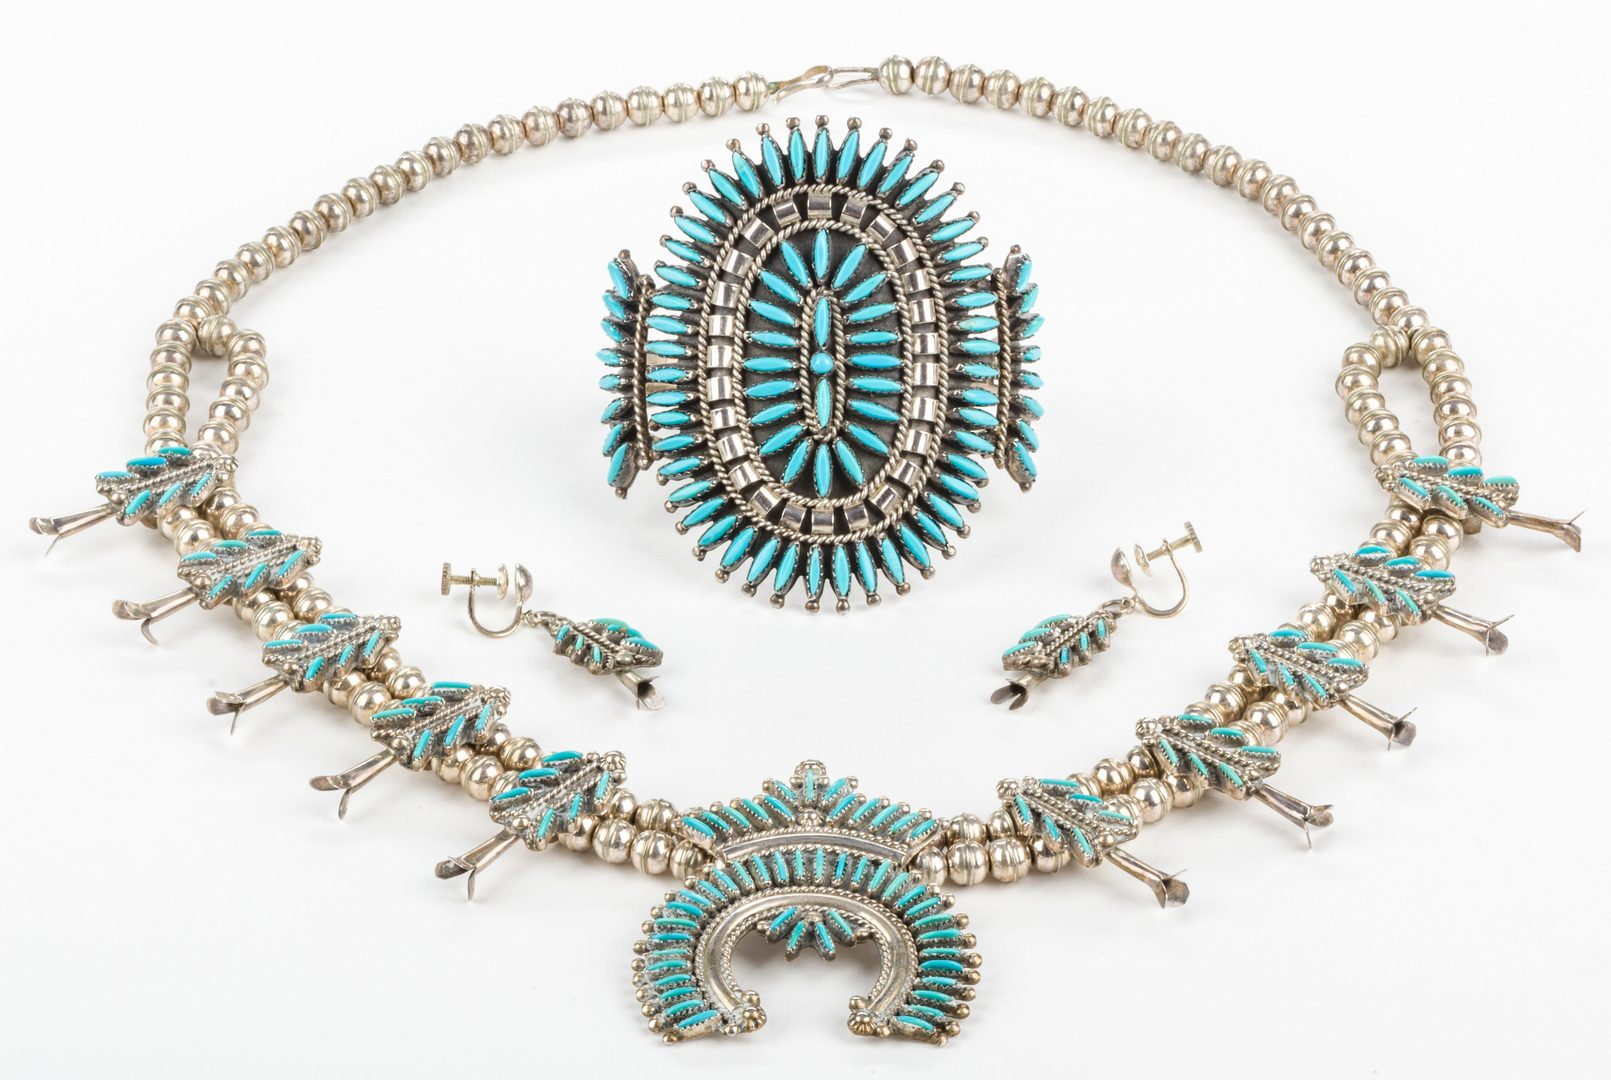 Lot 395: Zuni Needlepoint Necklace, Earrings, Cuff